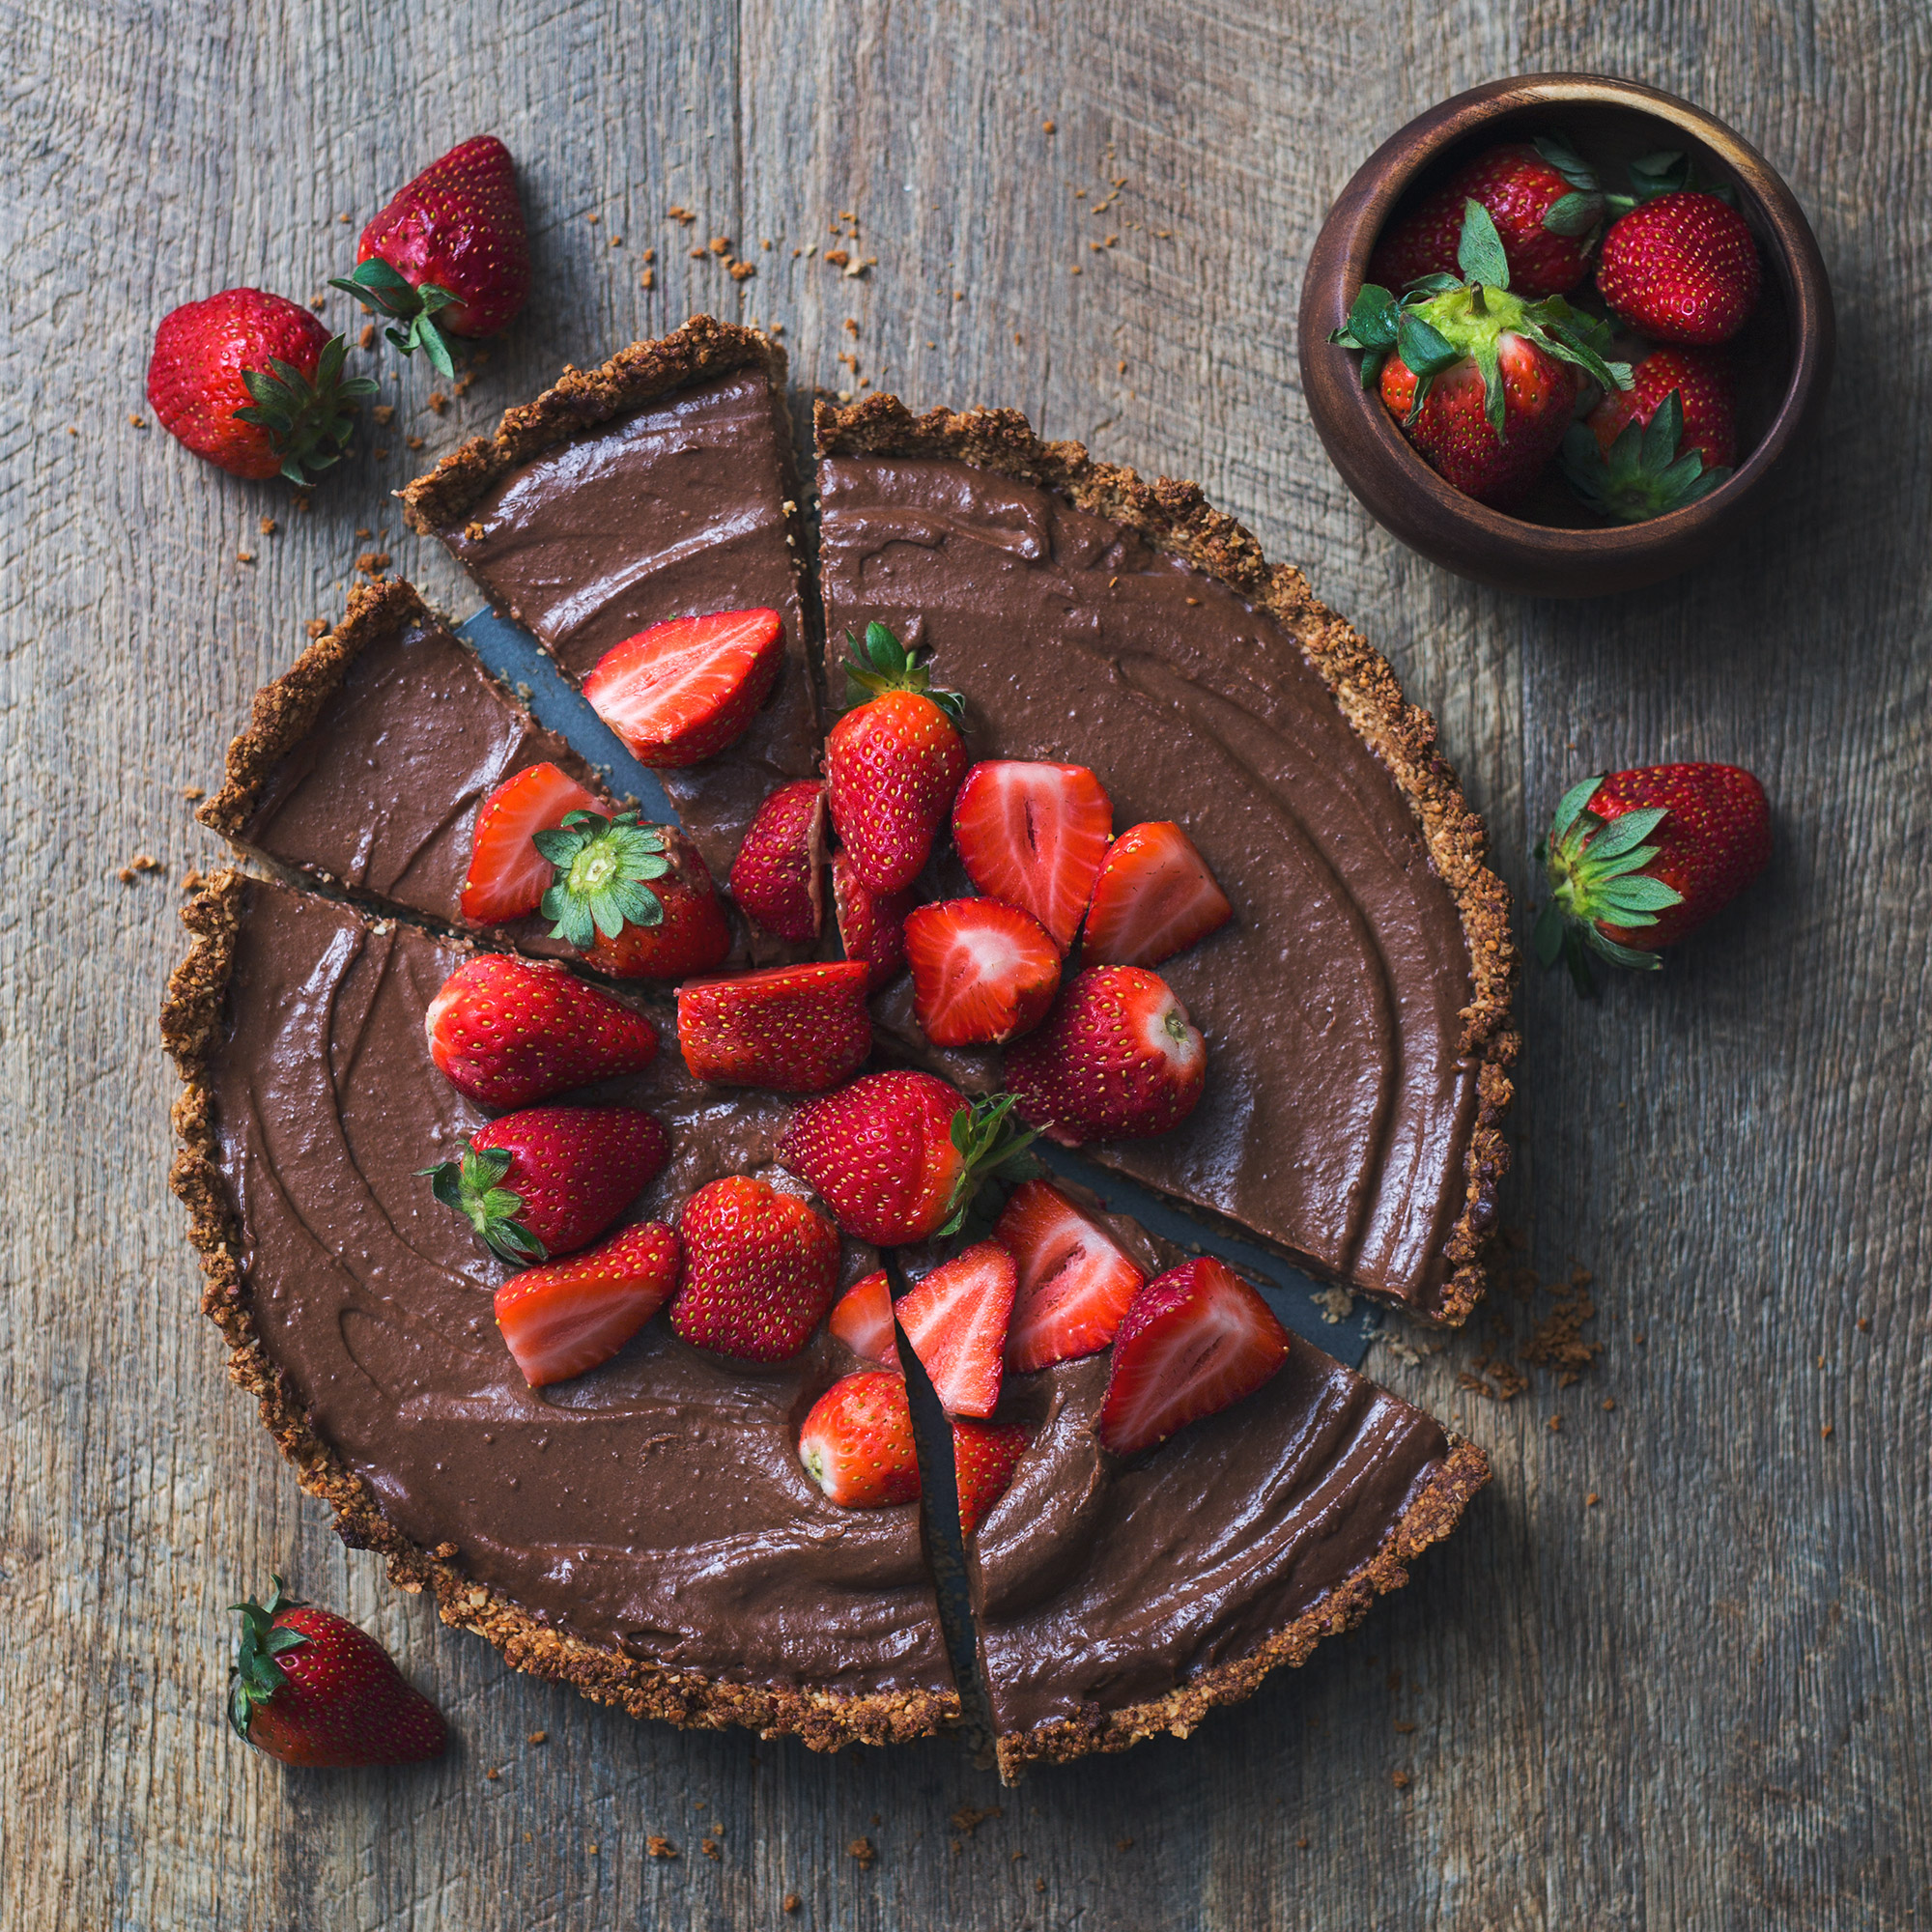 Vegan Chocolate and Strawberry Custard Tart